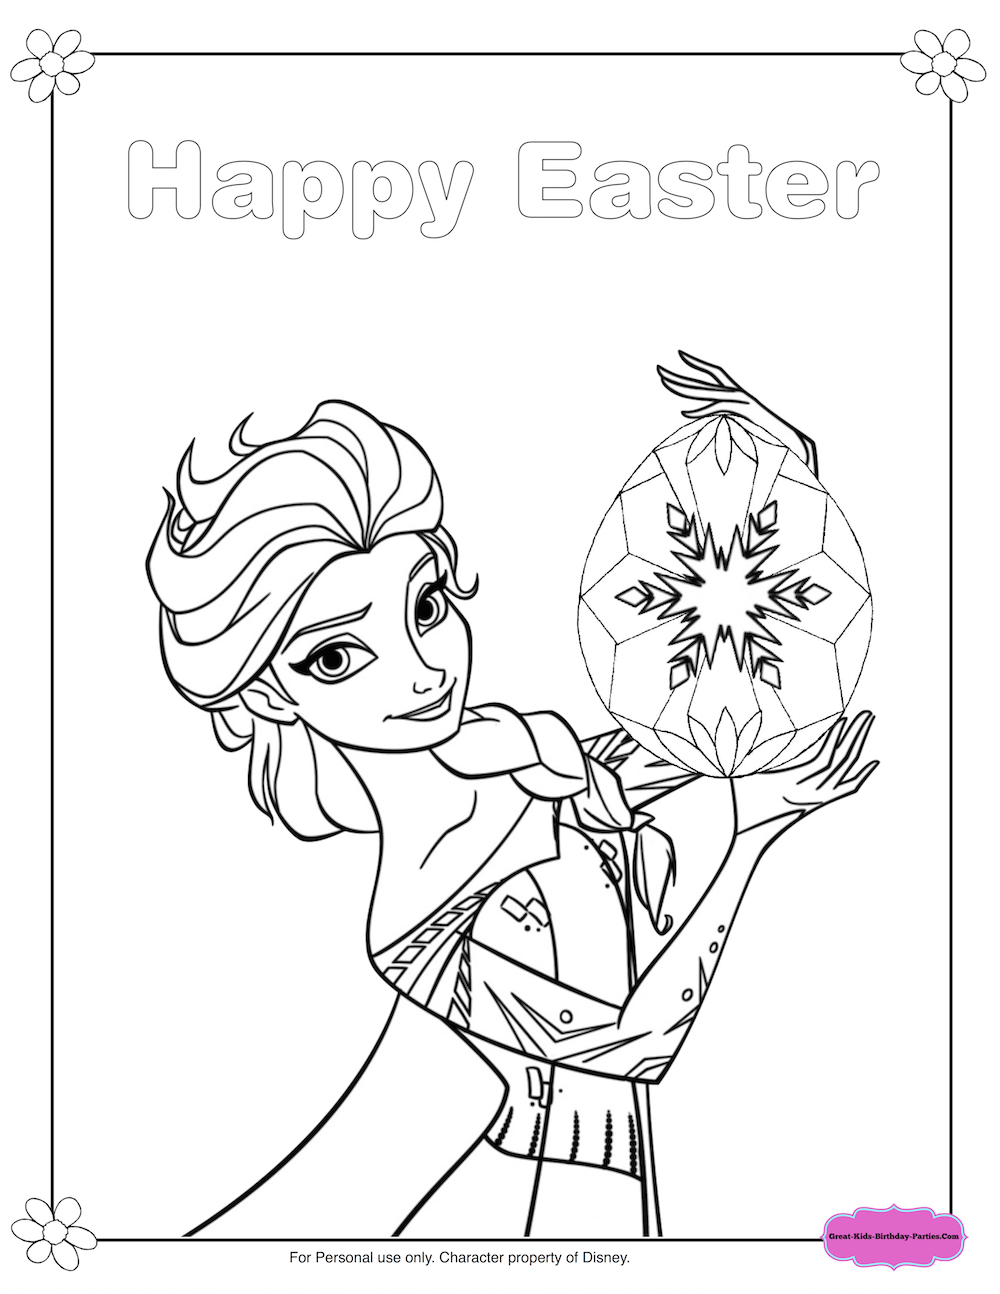 disney easter coloring pages tinkerbell - photo#11